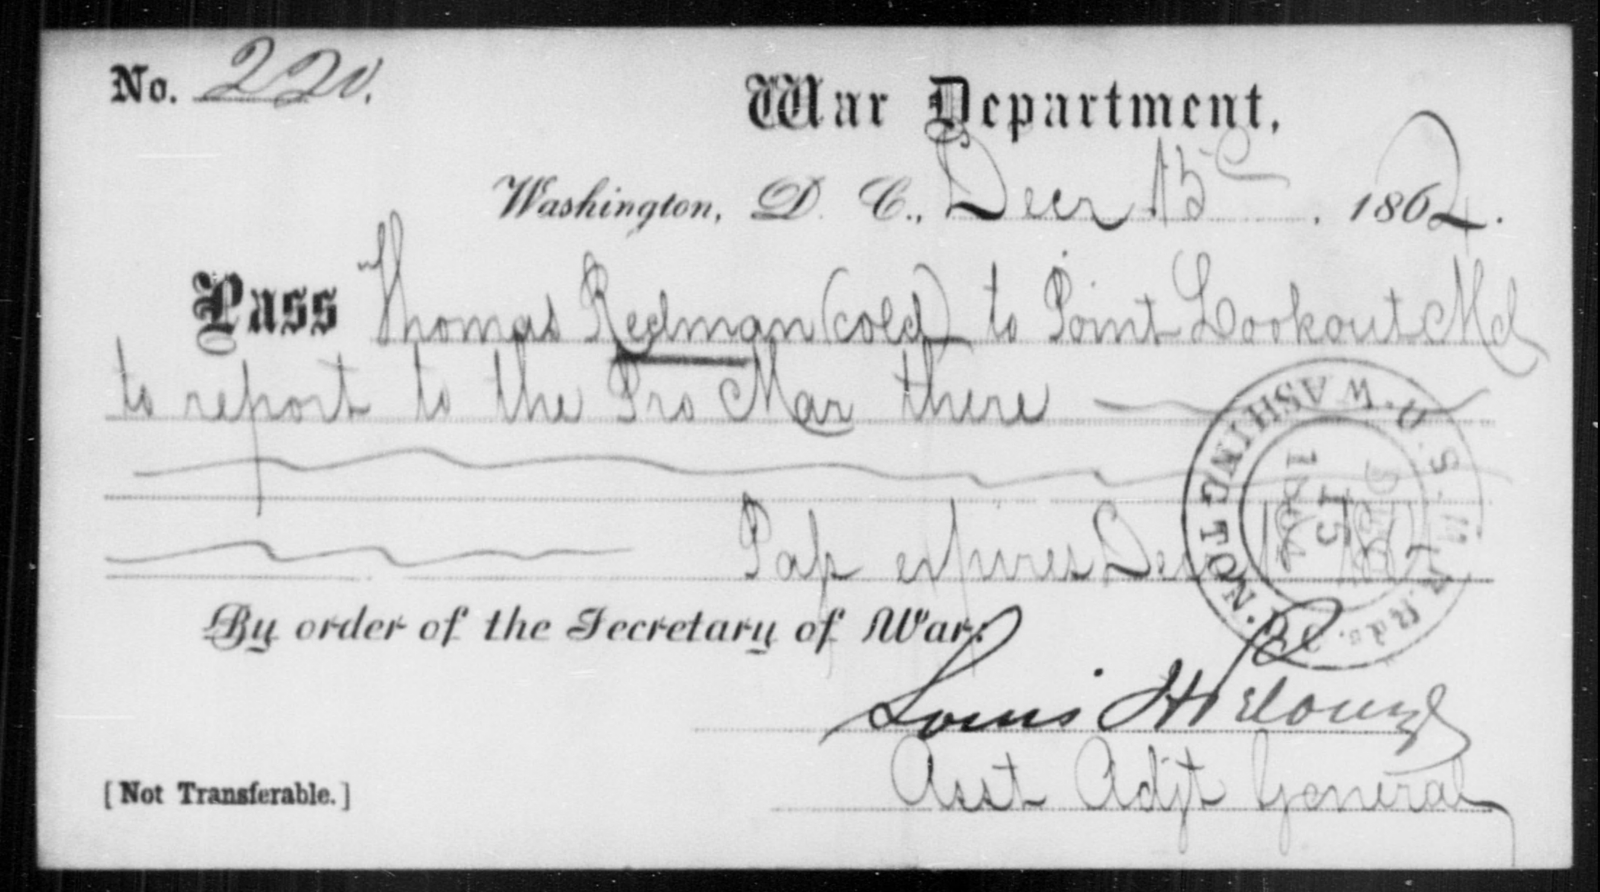 Redman, Thomas - State: District of Columbia - Year: 1864